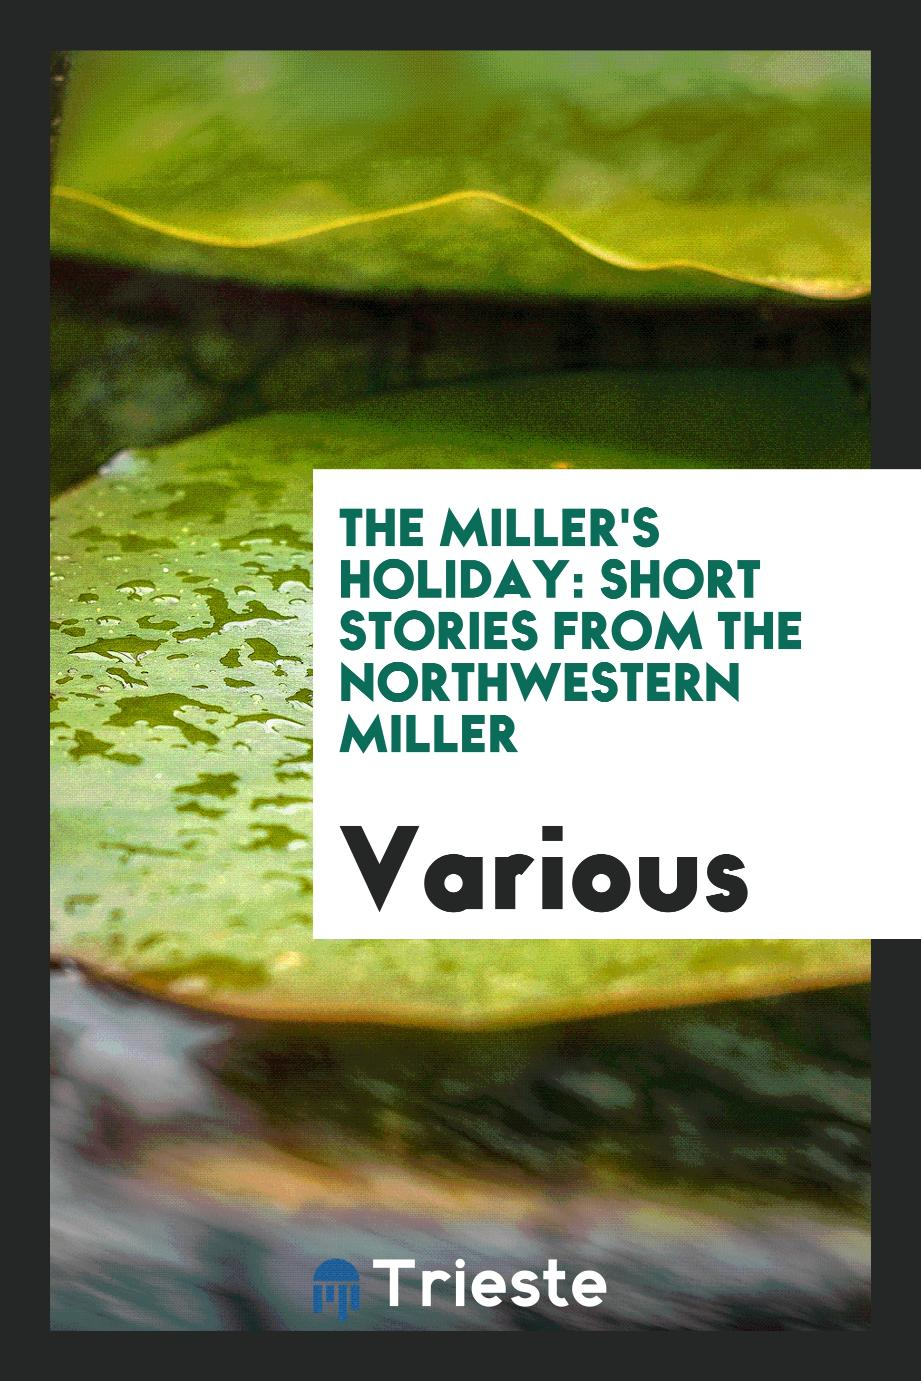 The Miller's Holiday: Short Stories from the Northwestern Miller